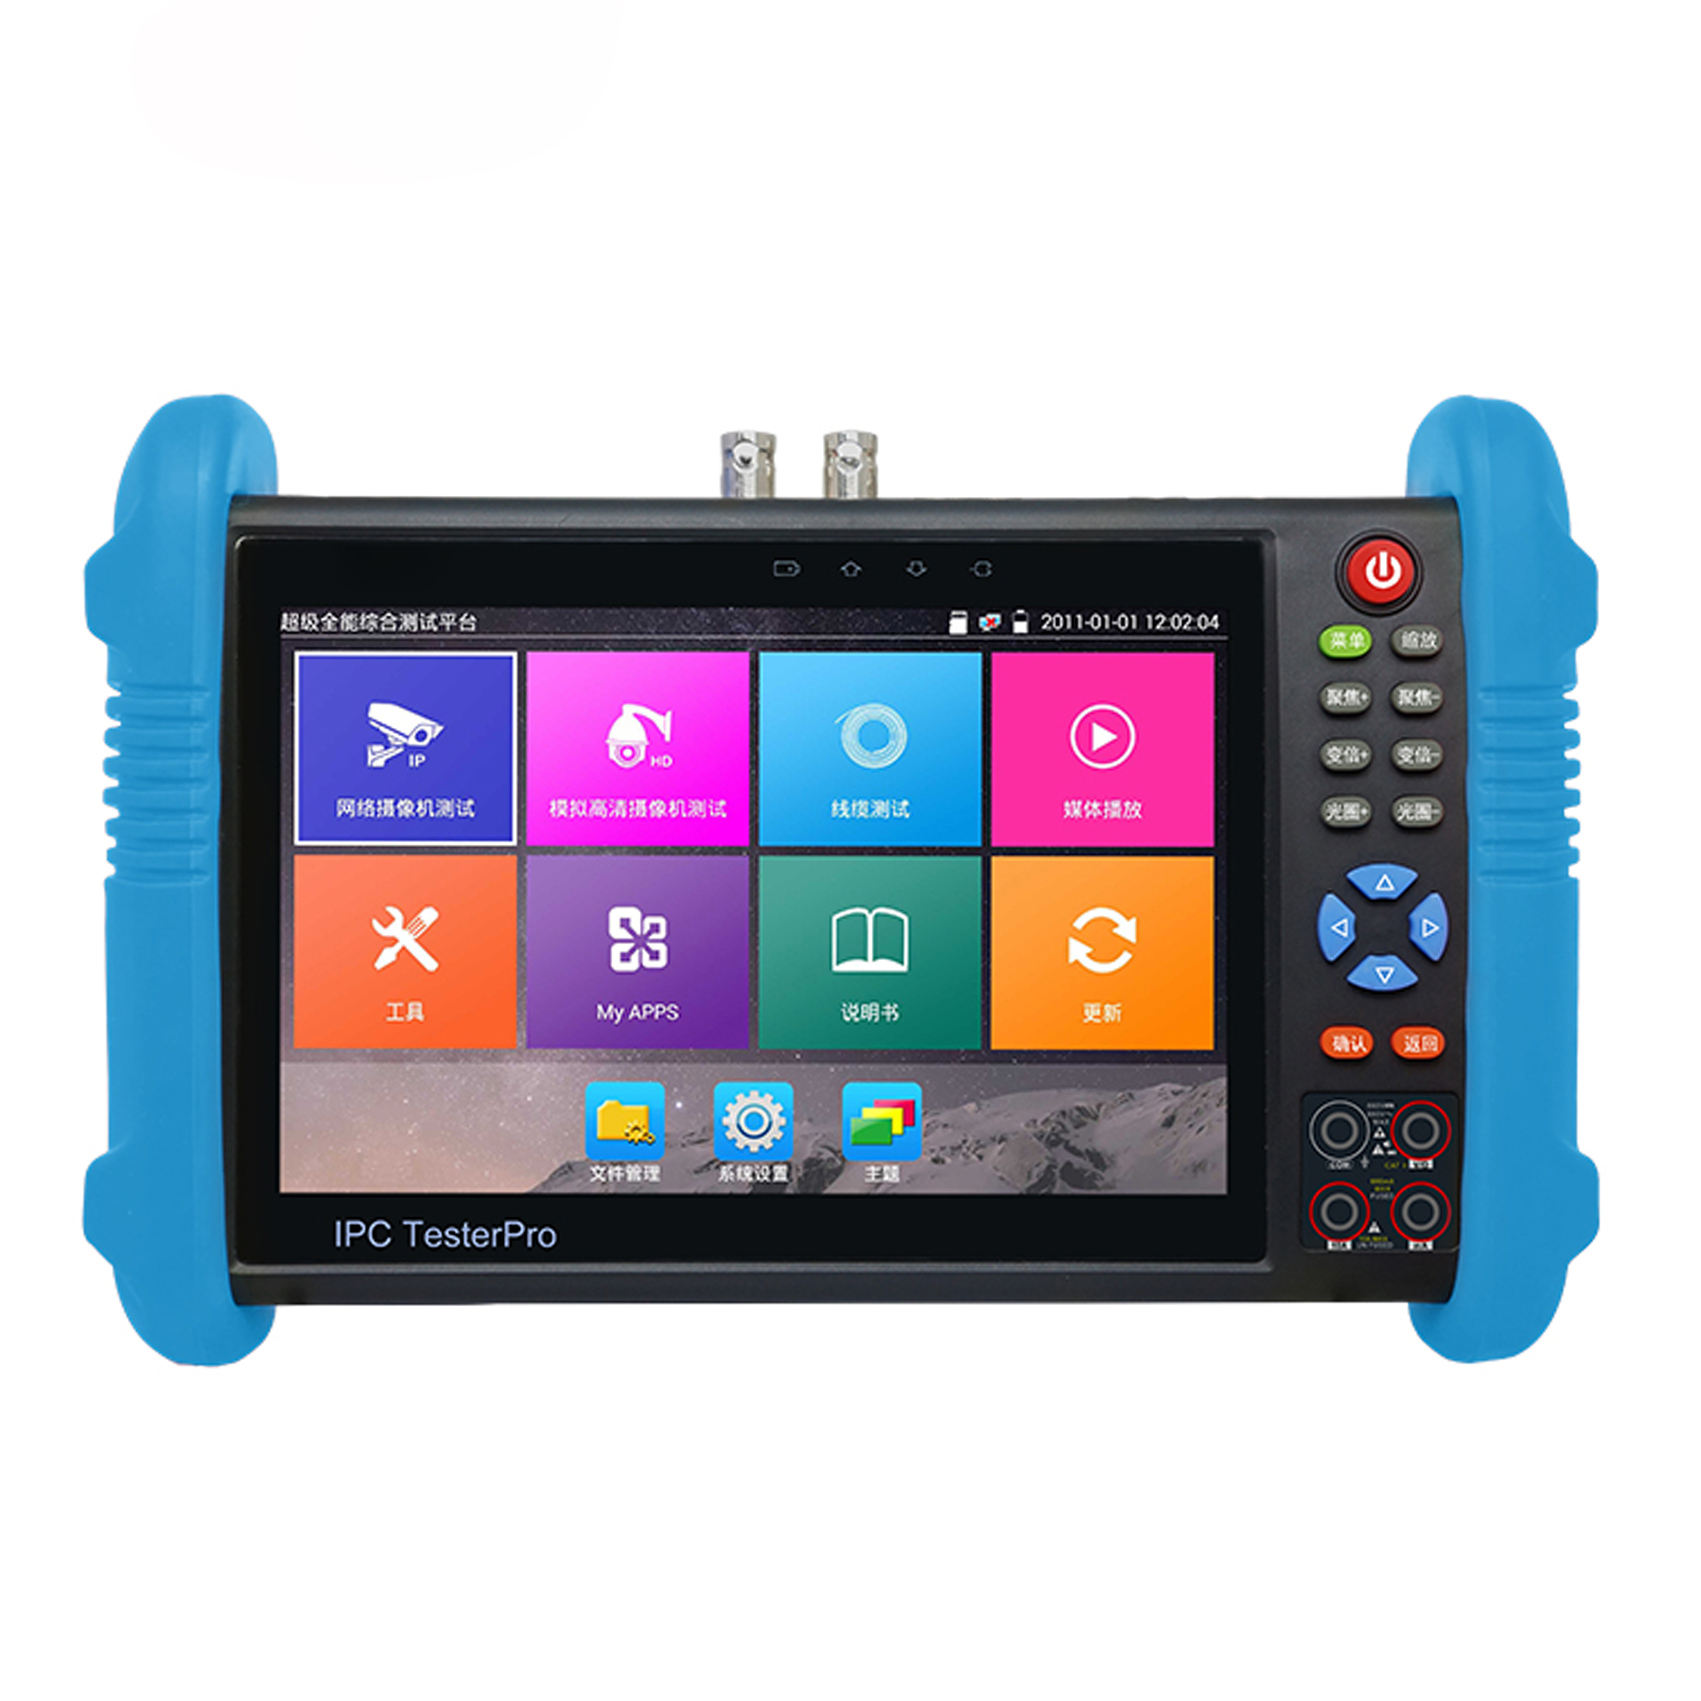 H.265/H.264 7 inch IPS touch screen CVBS test IPC-9800 Plus ip camera tester